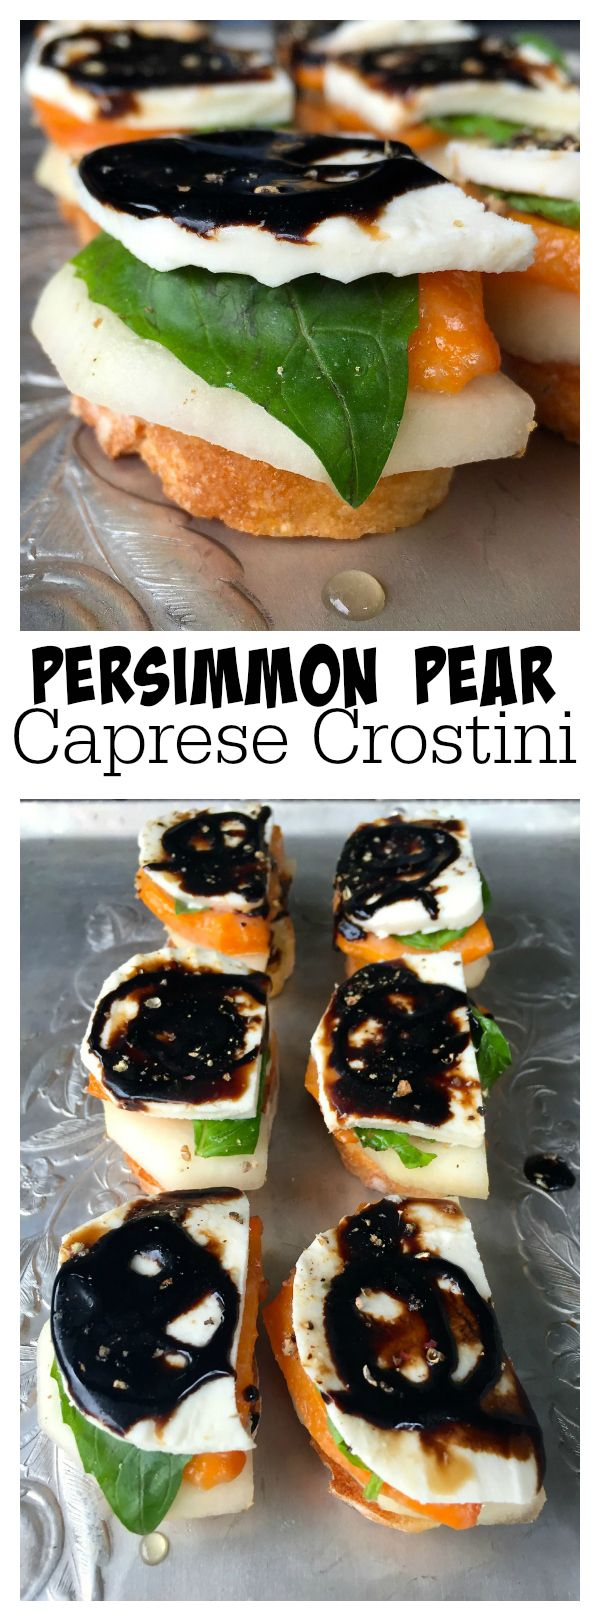 1000+ images about Persimmons on Pinterest | Recipe, Sweets and Food